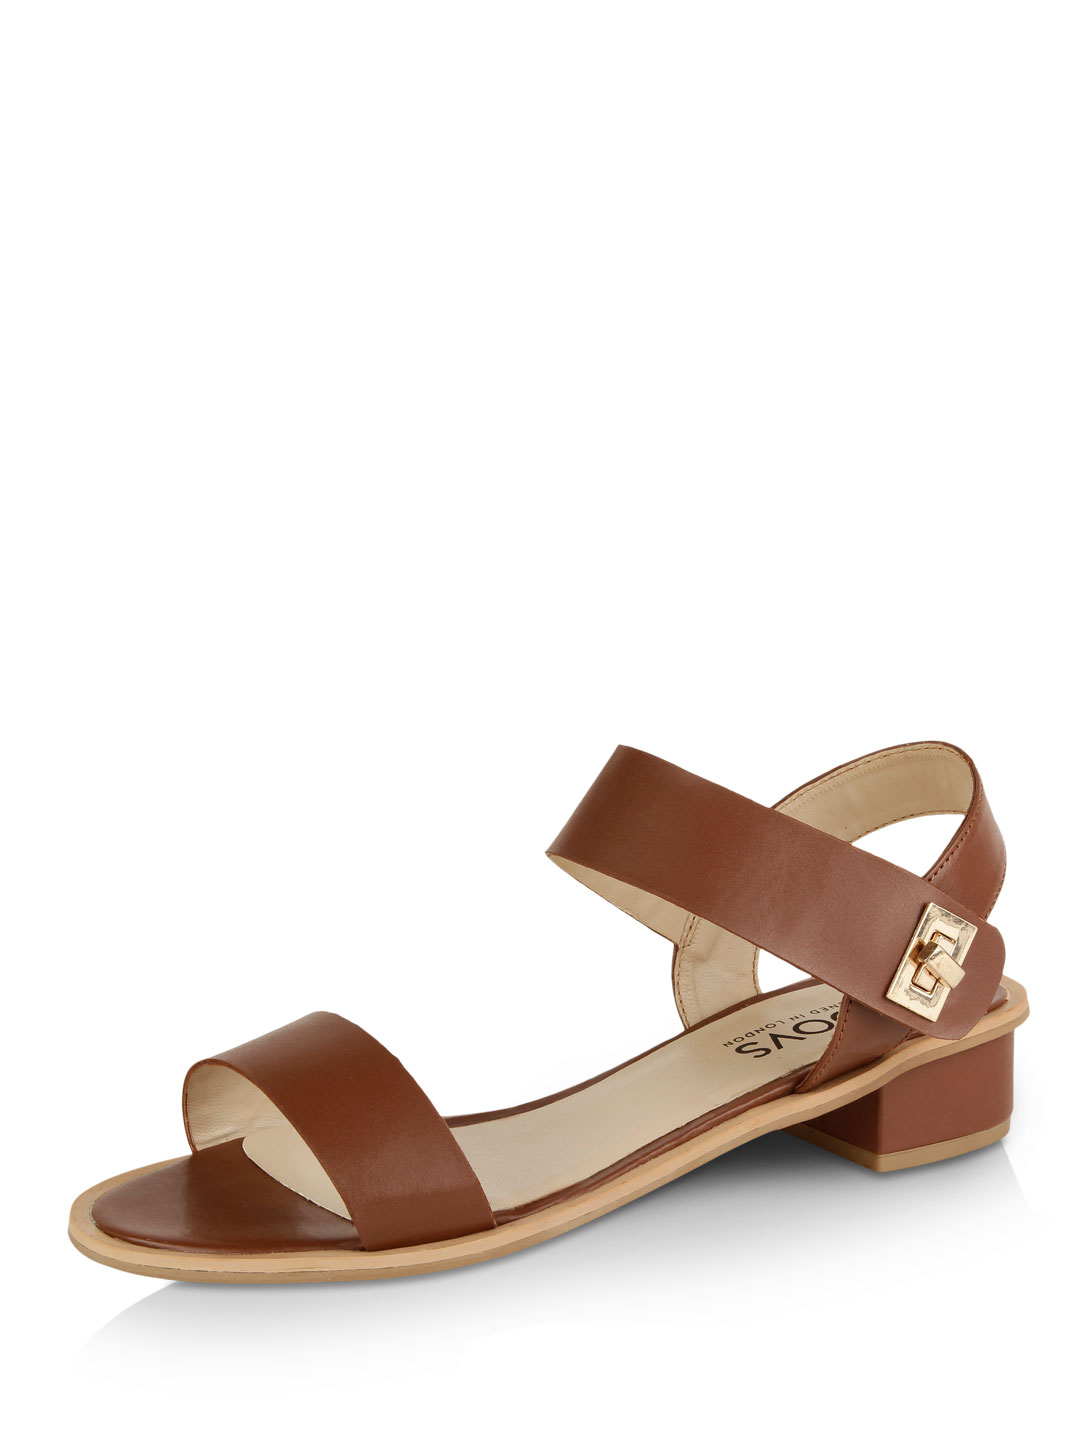 KOOVS Block Heel Sandals...